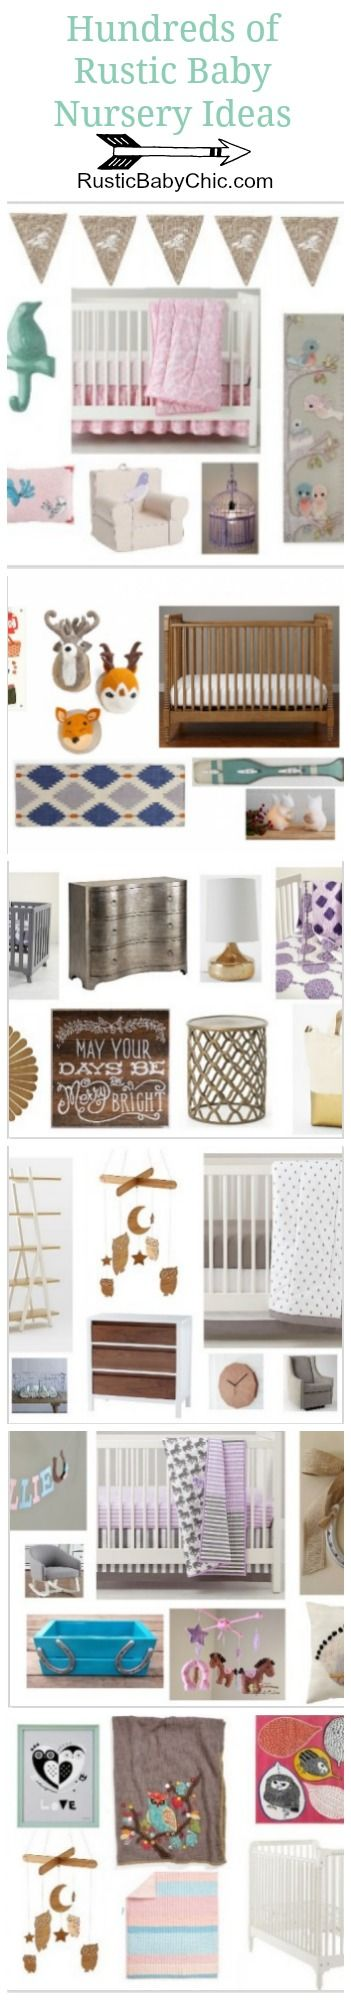 All the best rustic baby nursery ideas and more! All on @rusticbabychic